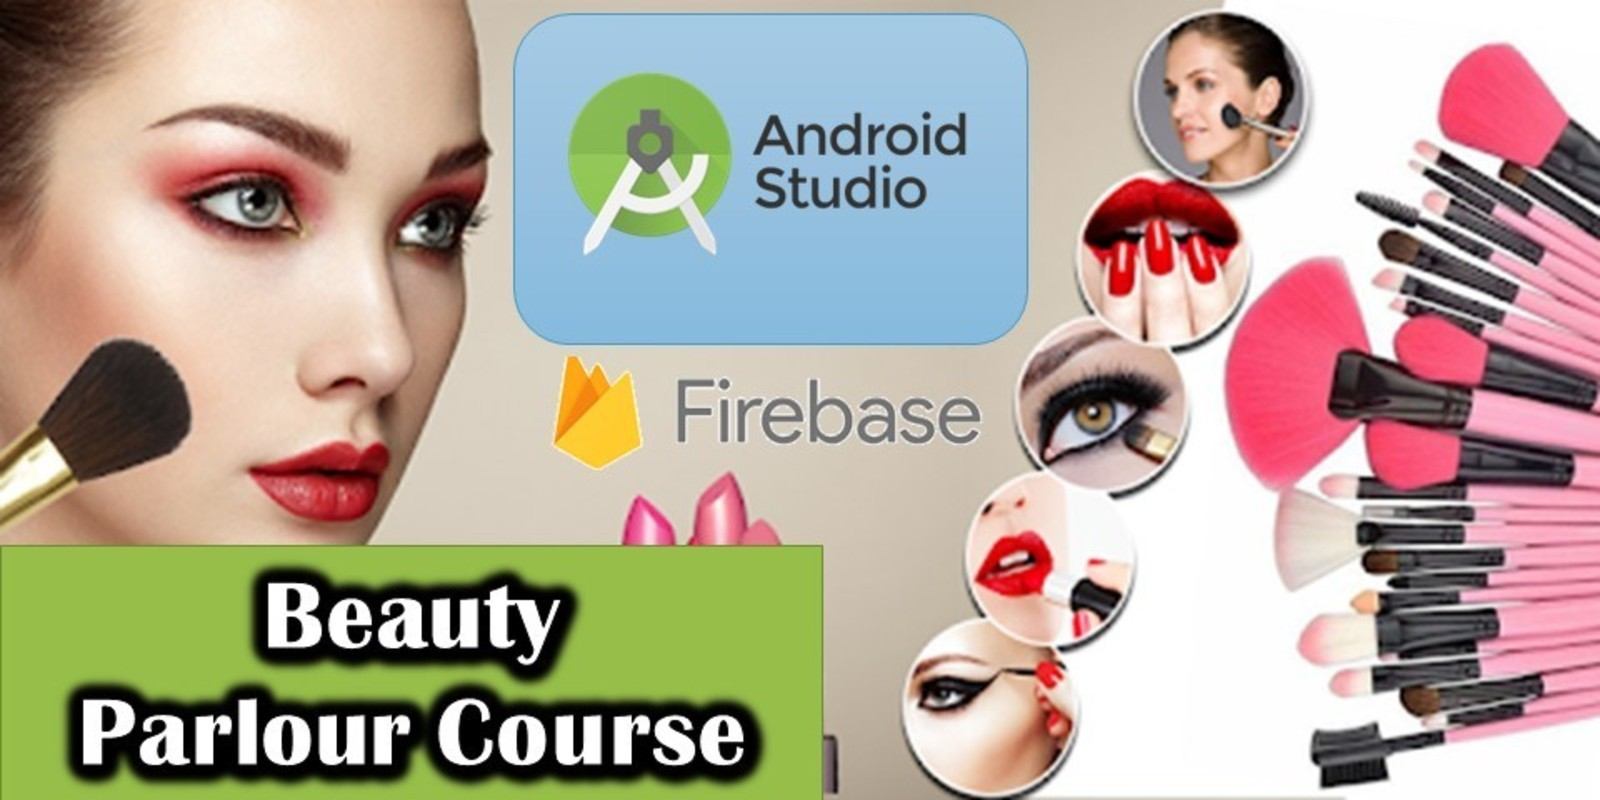 Beauty Parlour Course Android Studio Project